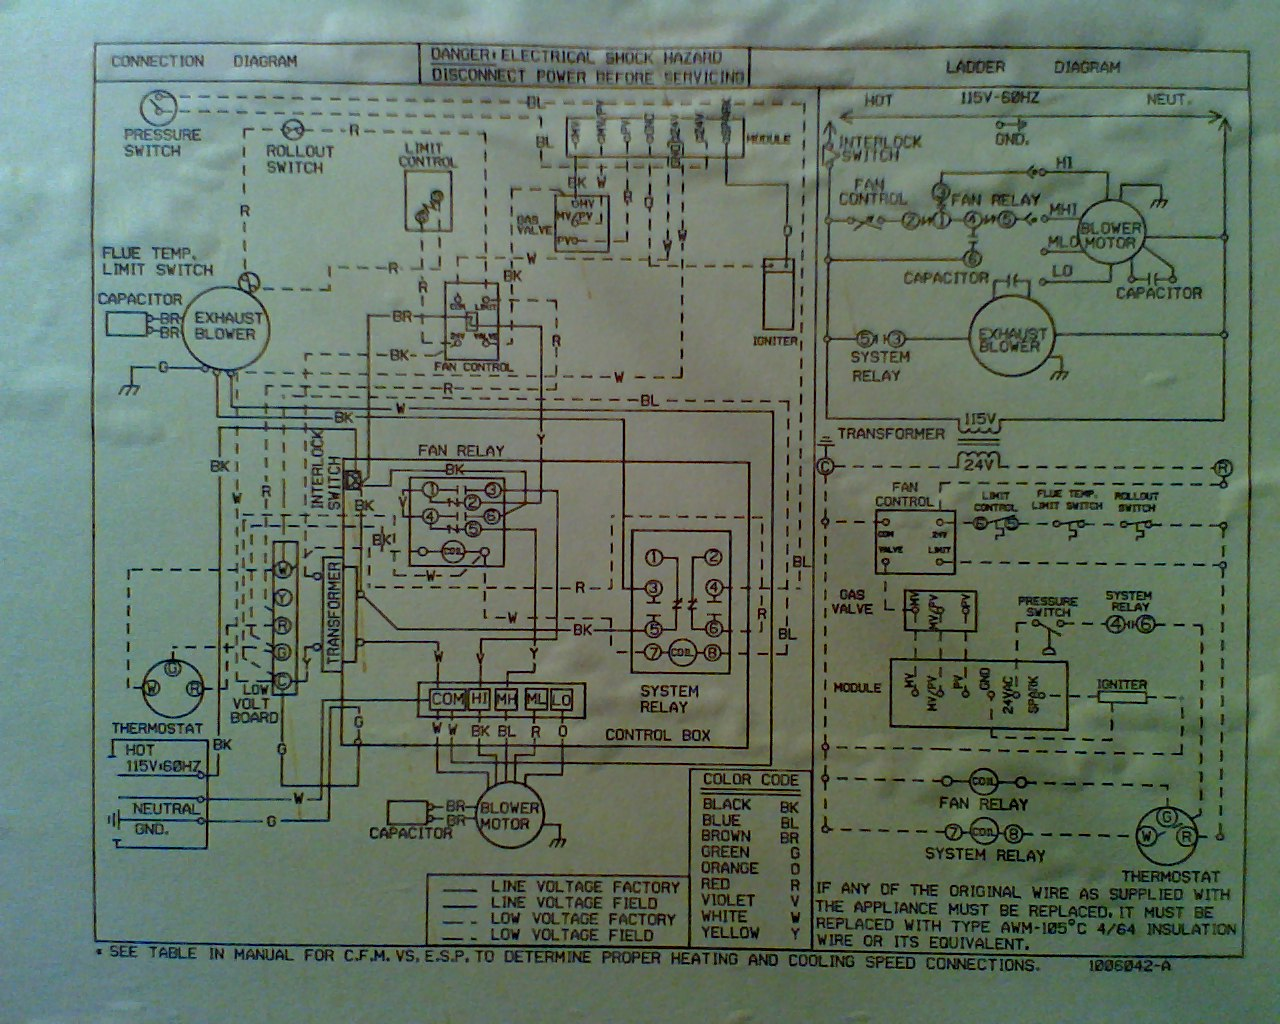 2009 11 20_231603_1120091711a air conditioner y wire grihon com ac, coolers & devices tempstar 2200 air conditioner wiring diagram at couponss.co